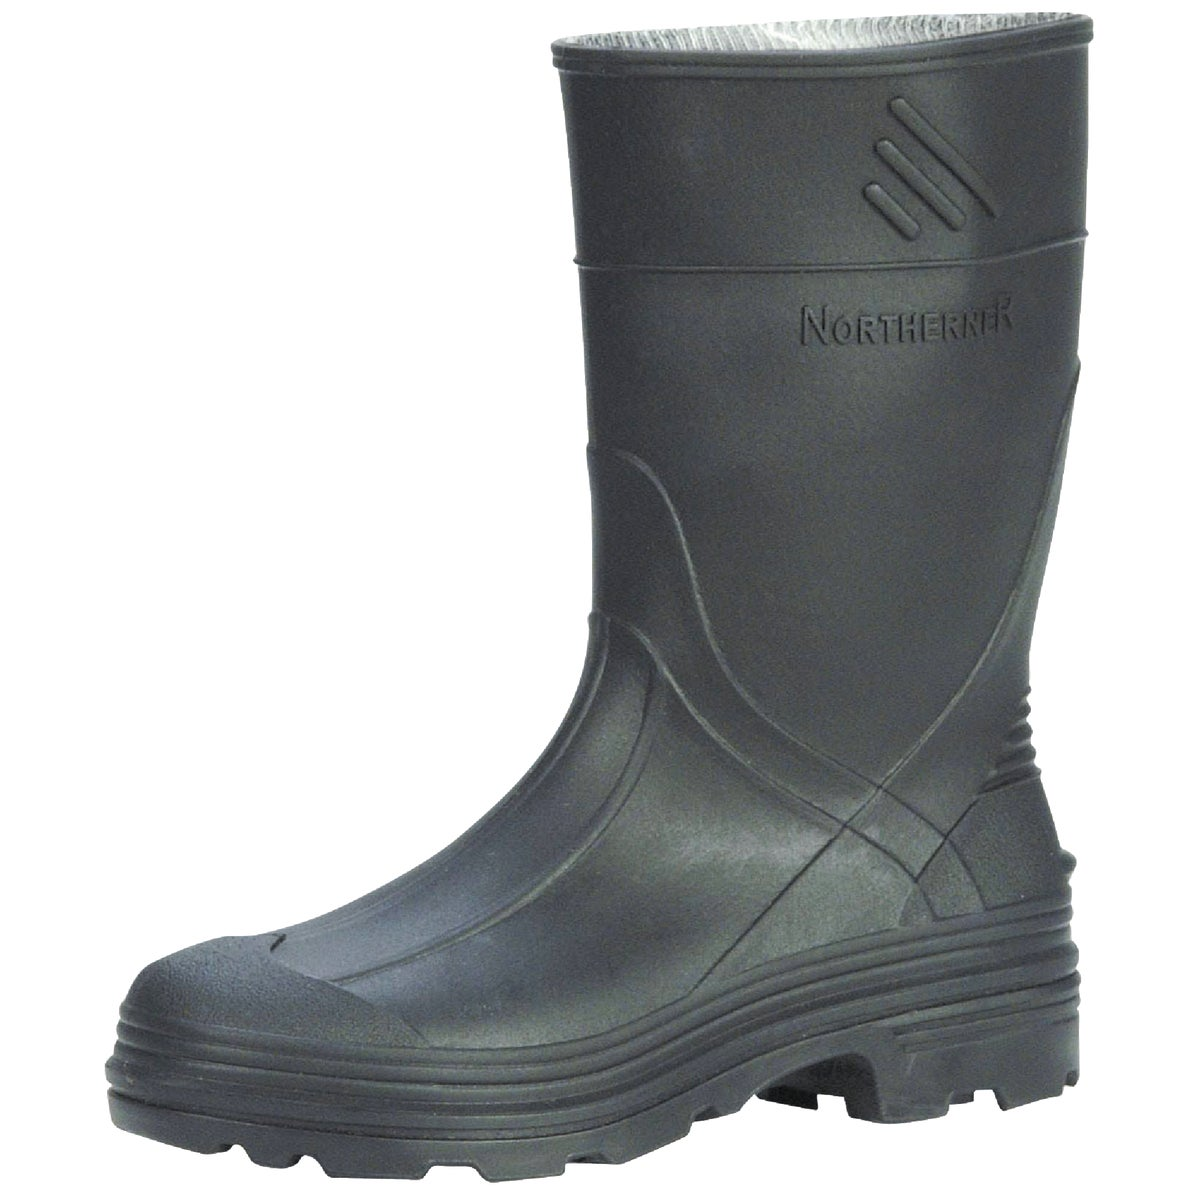 SZ5 YTH BLK PVC RAINBOOT - 76002-5 by Norcross Safety Prod